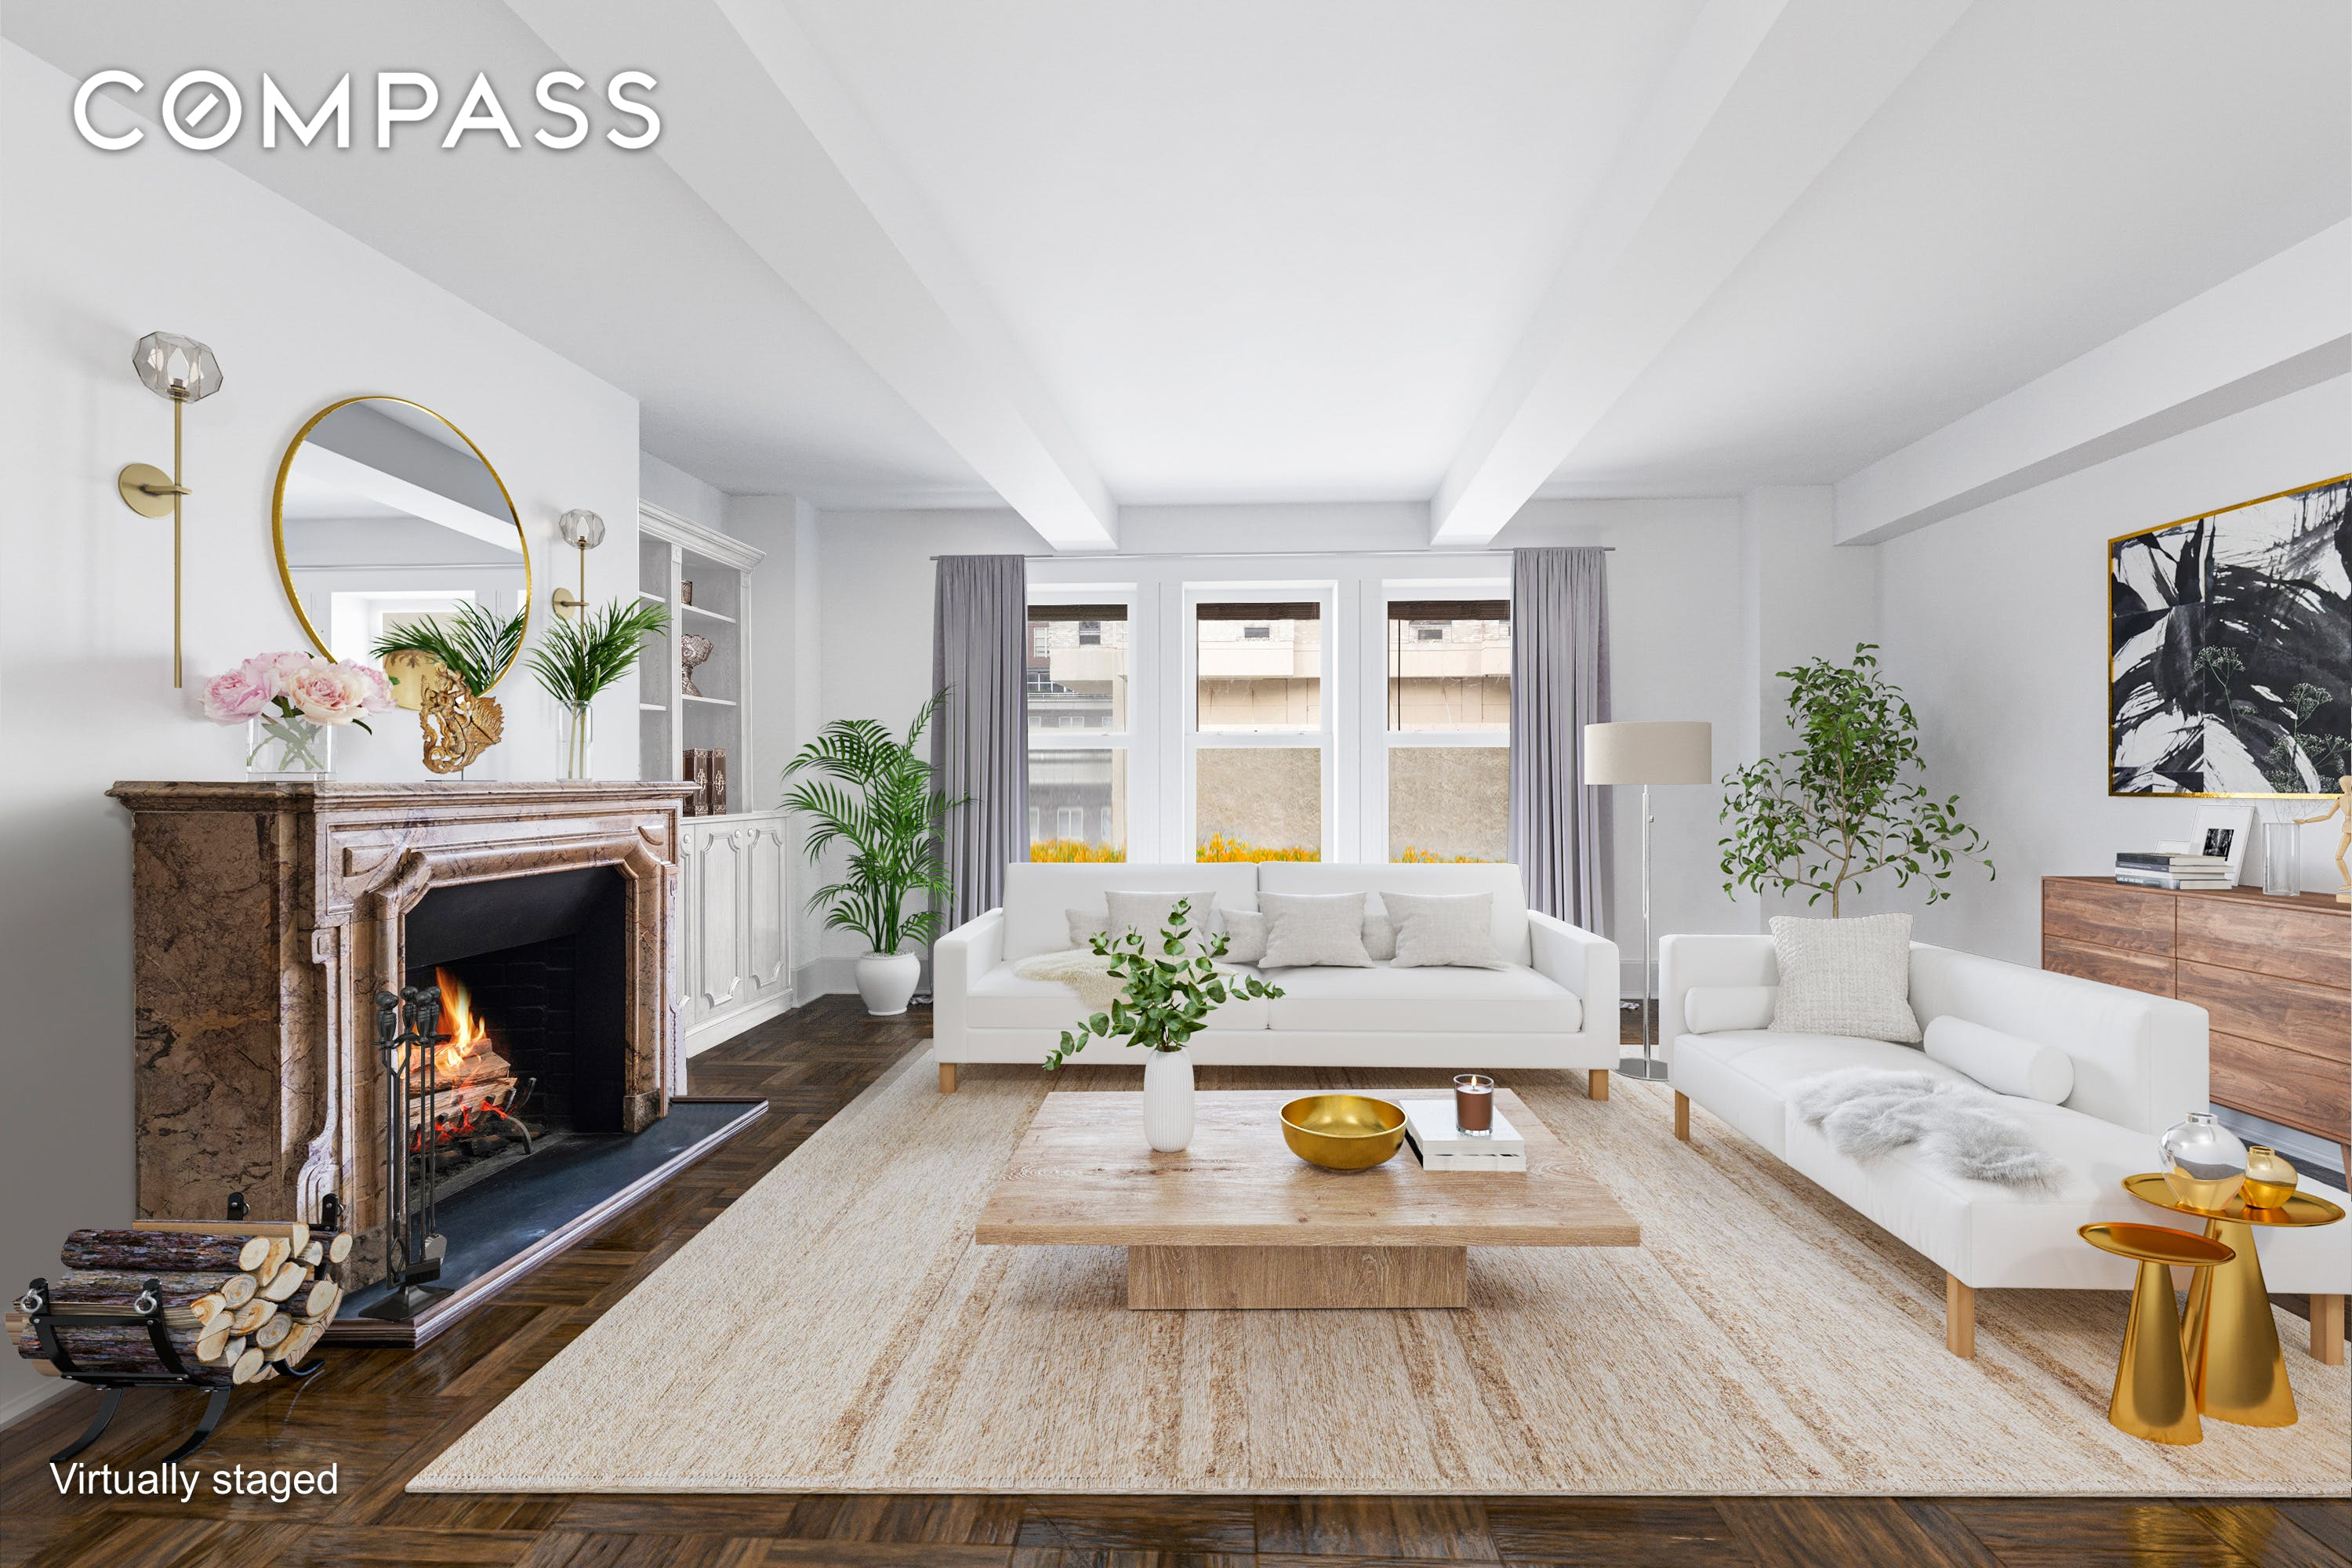 primary photo for 111 East 88th Street 7-B, New York, NY 10128, US